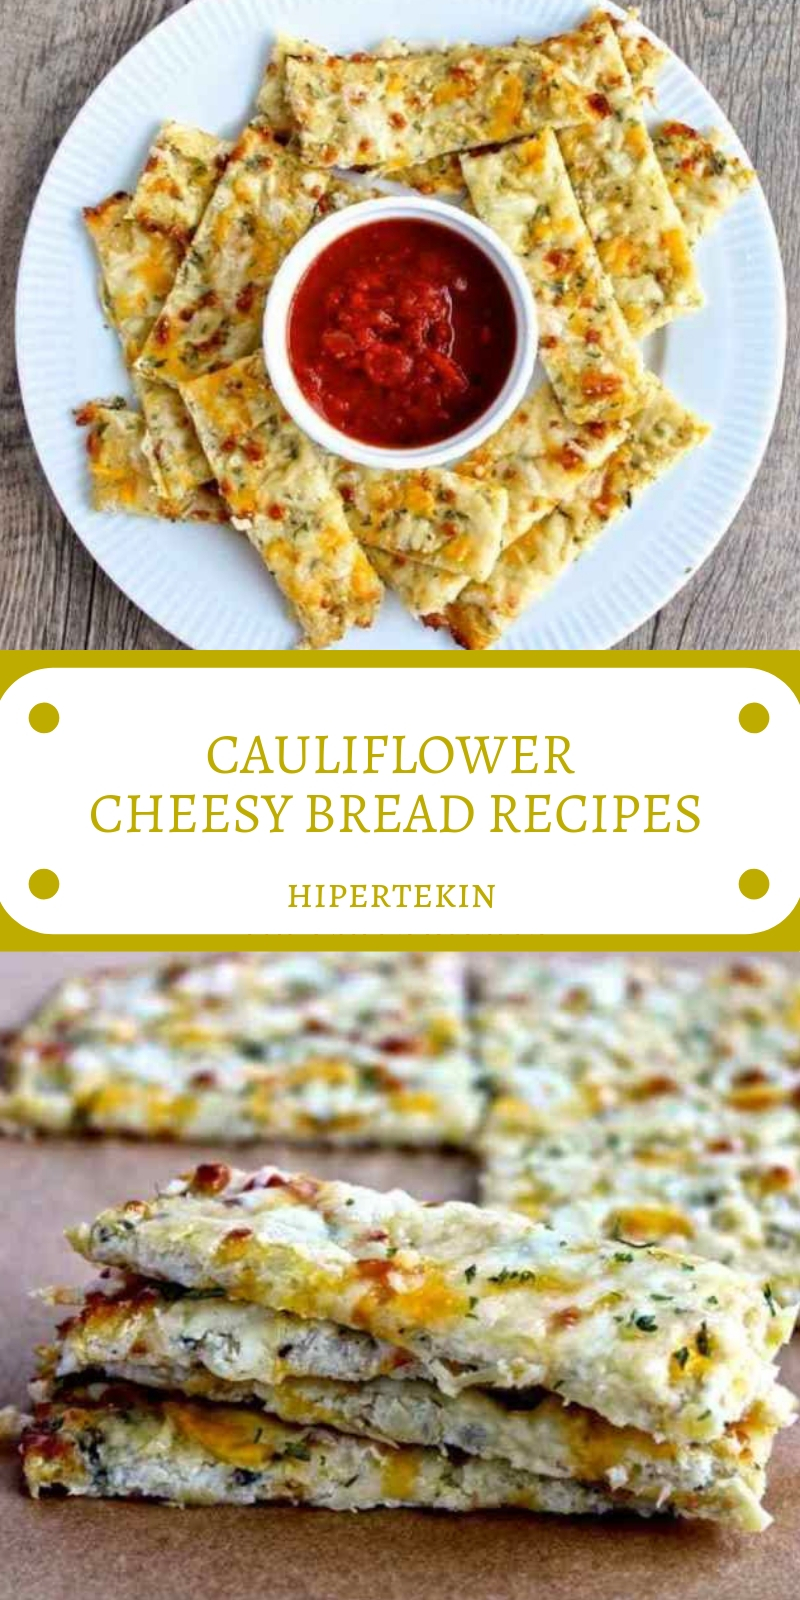 CAULIFLOWER CHEESY BREAD RECIPES